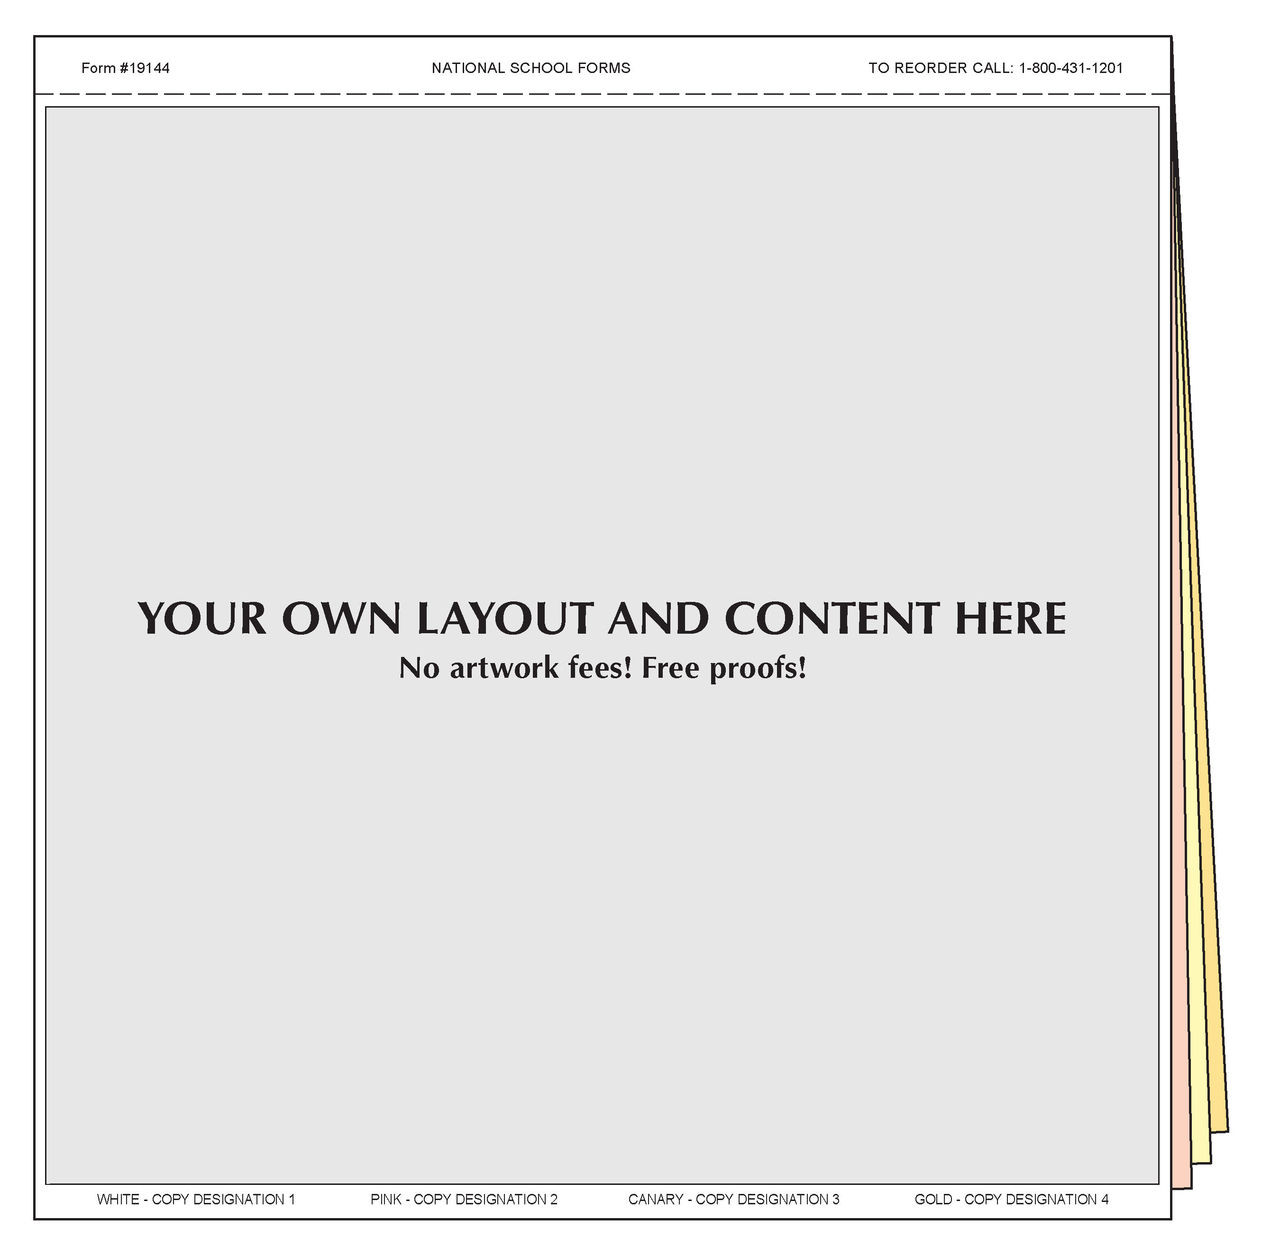 "#19144 - Customized Form - 8½"" x 8½"" - 4 Part"